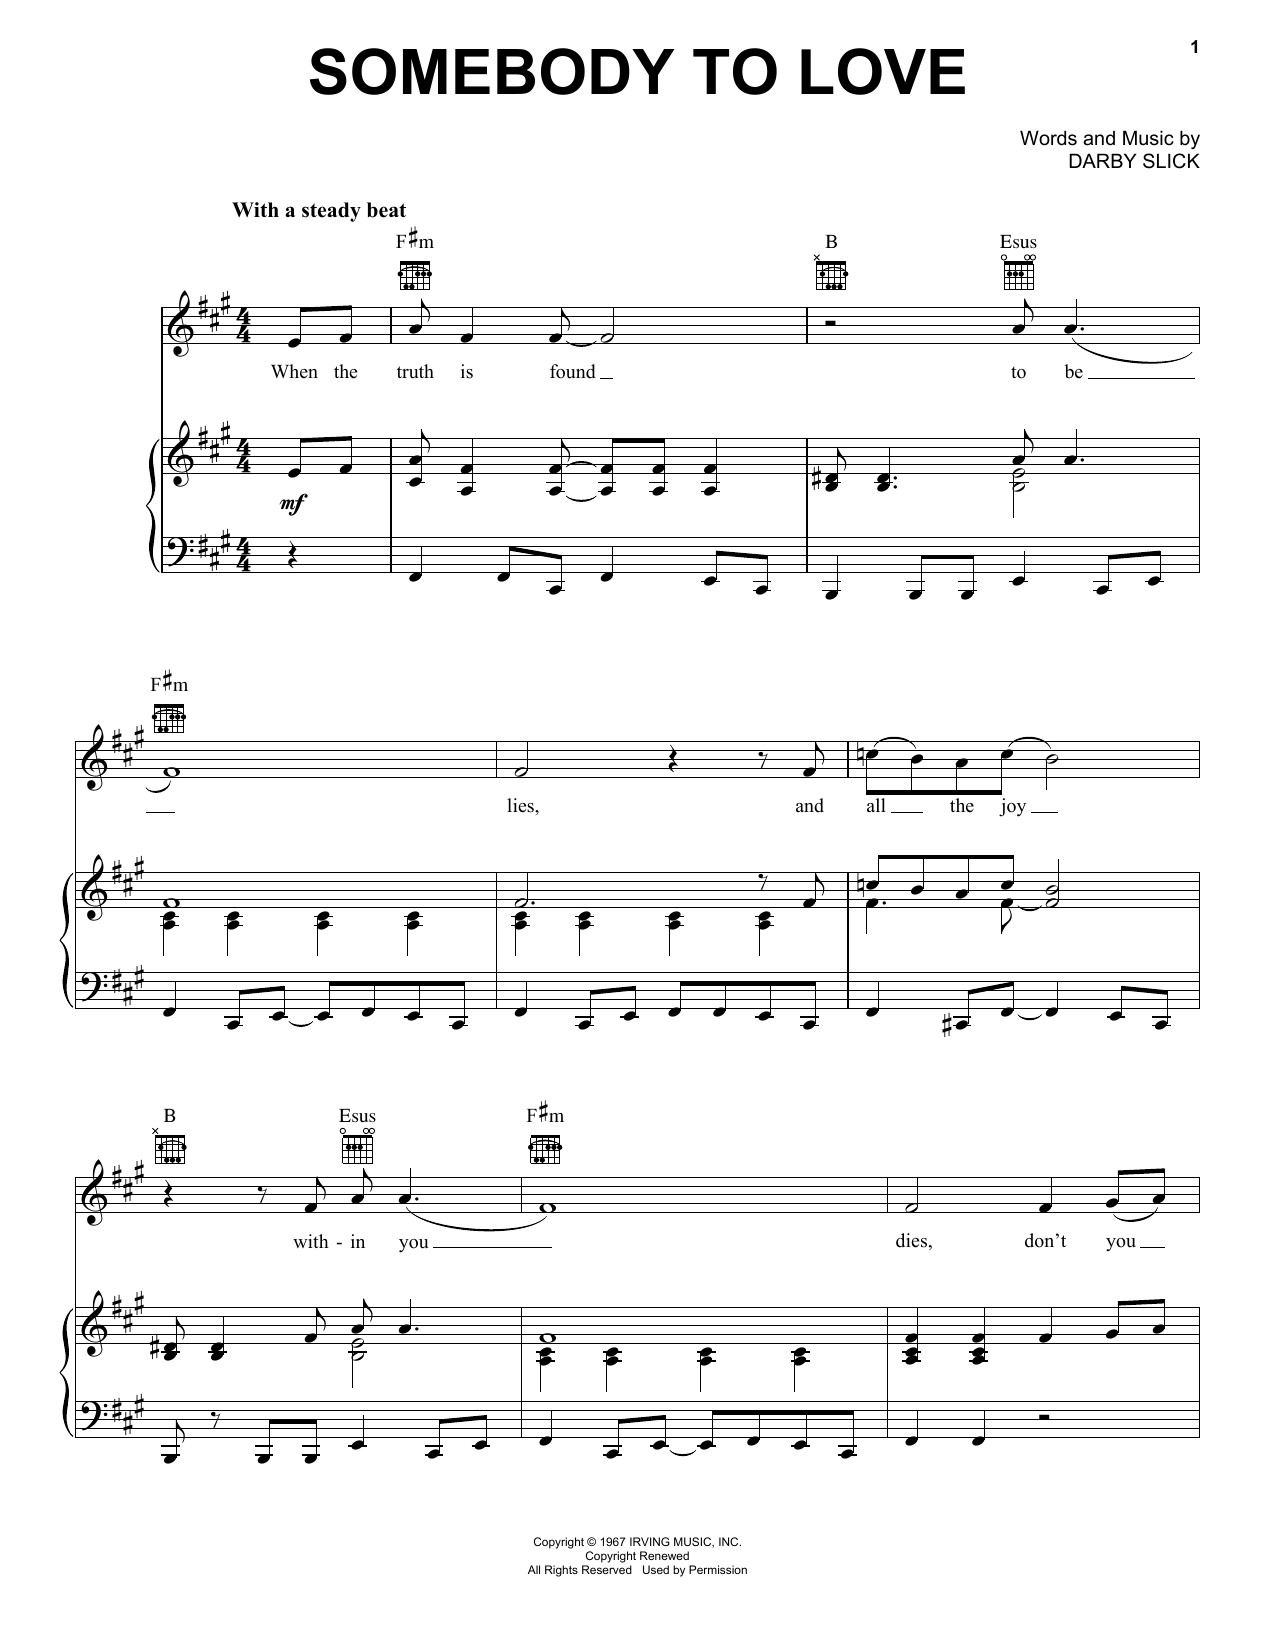 Jefferson Airplane 'Somebody To Love' Sheet Music Notes, Chords | Download  Printable Ukulele with Strumming Patterns - SKU: 164589